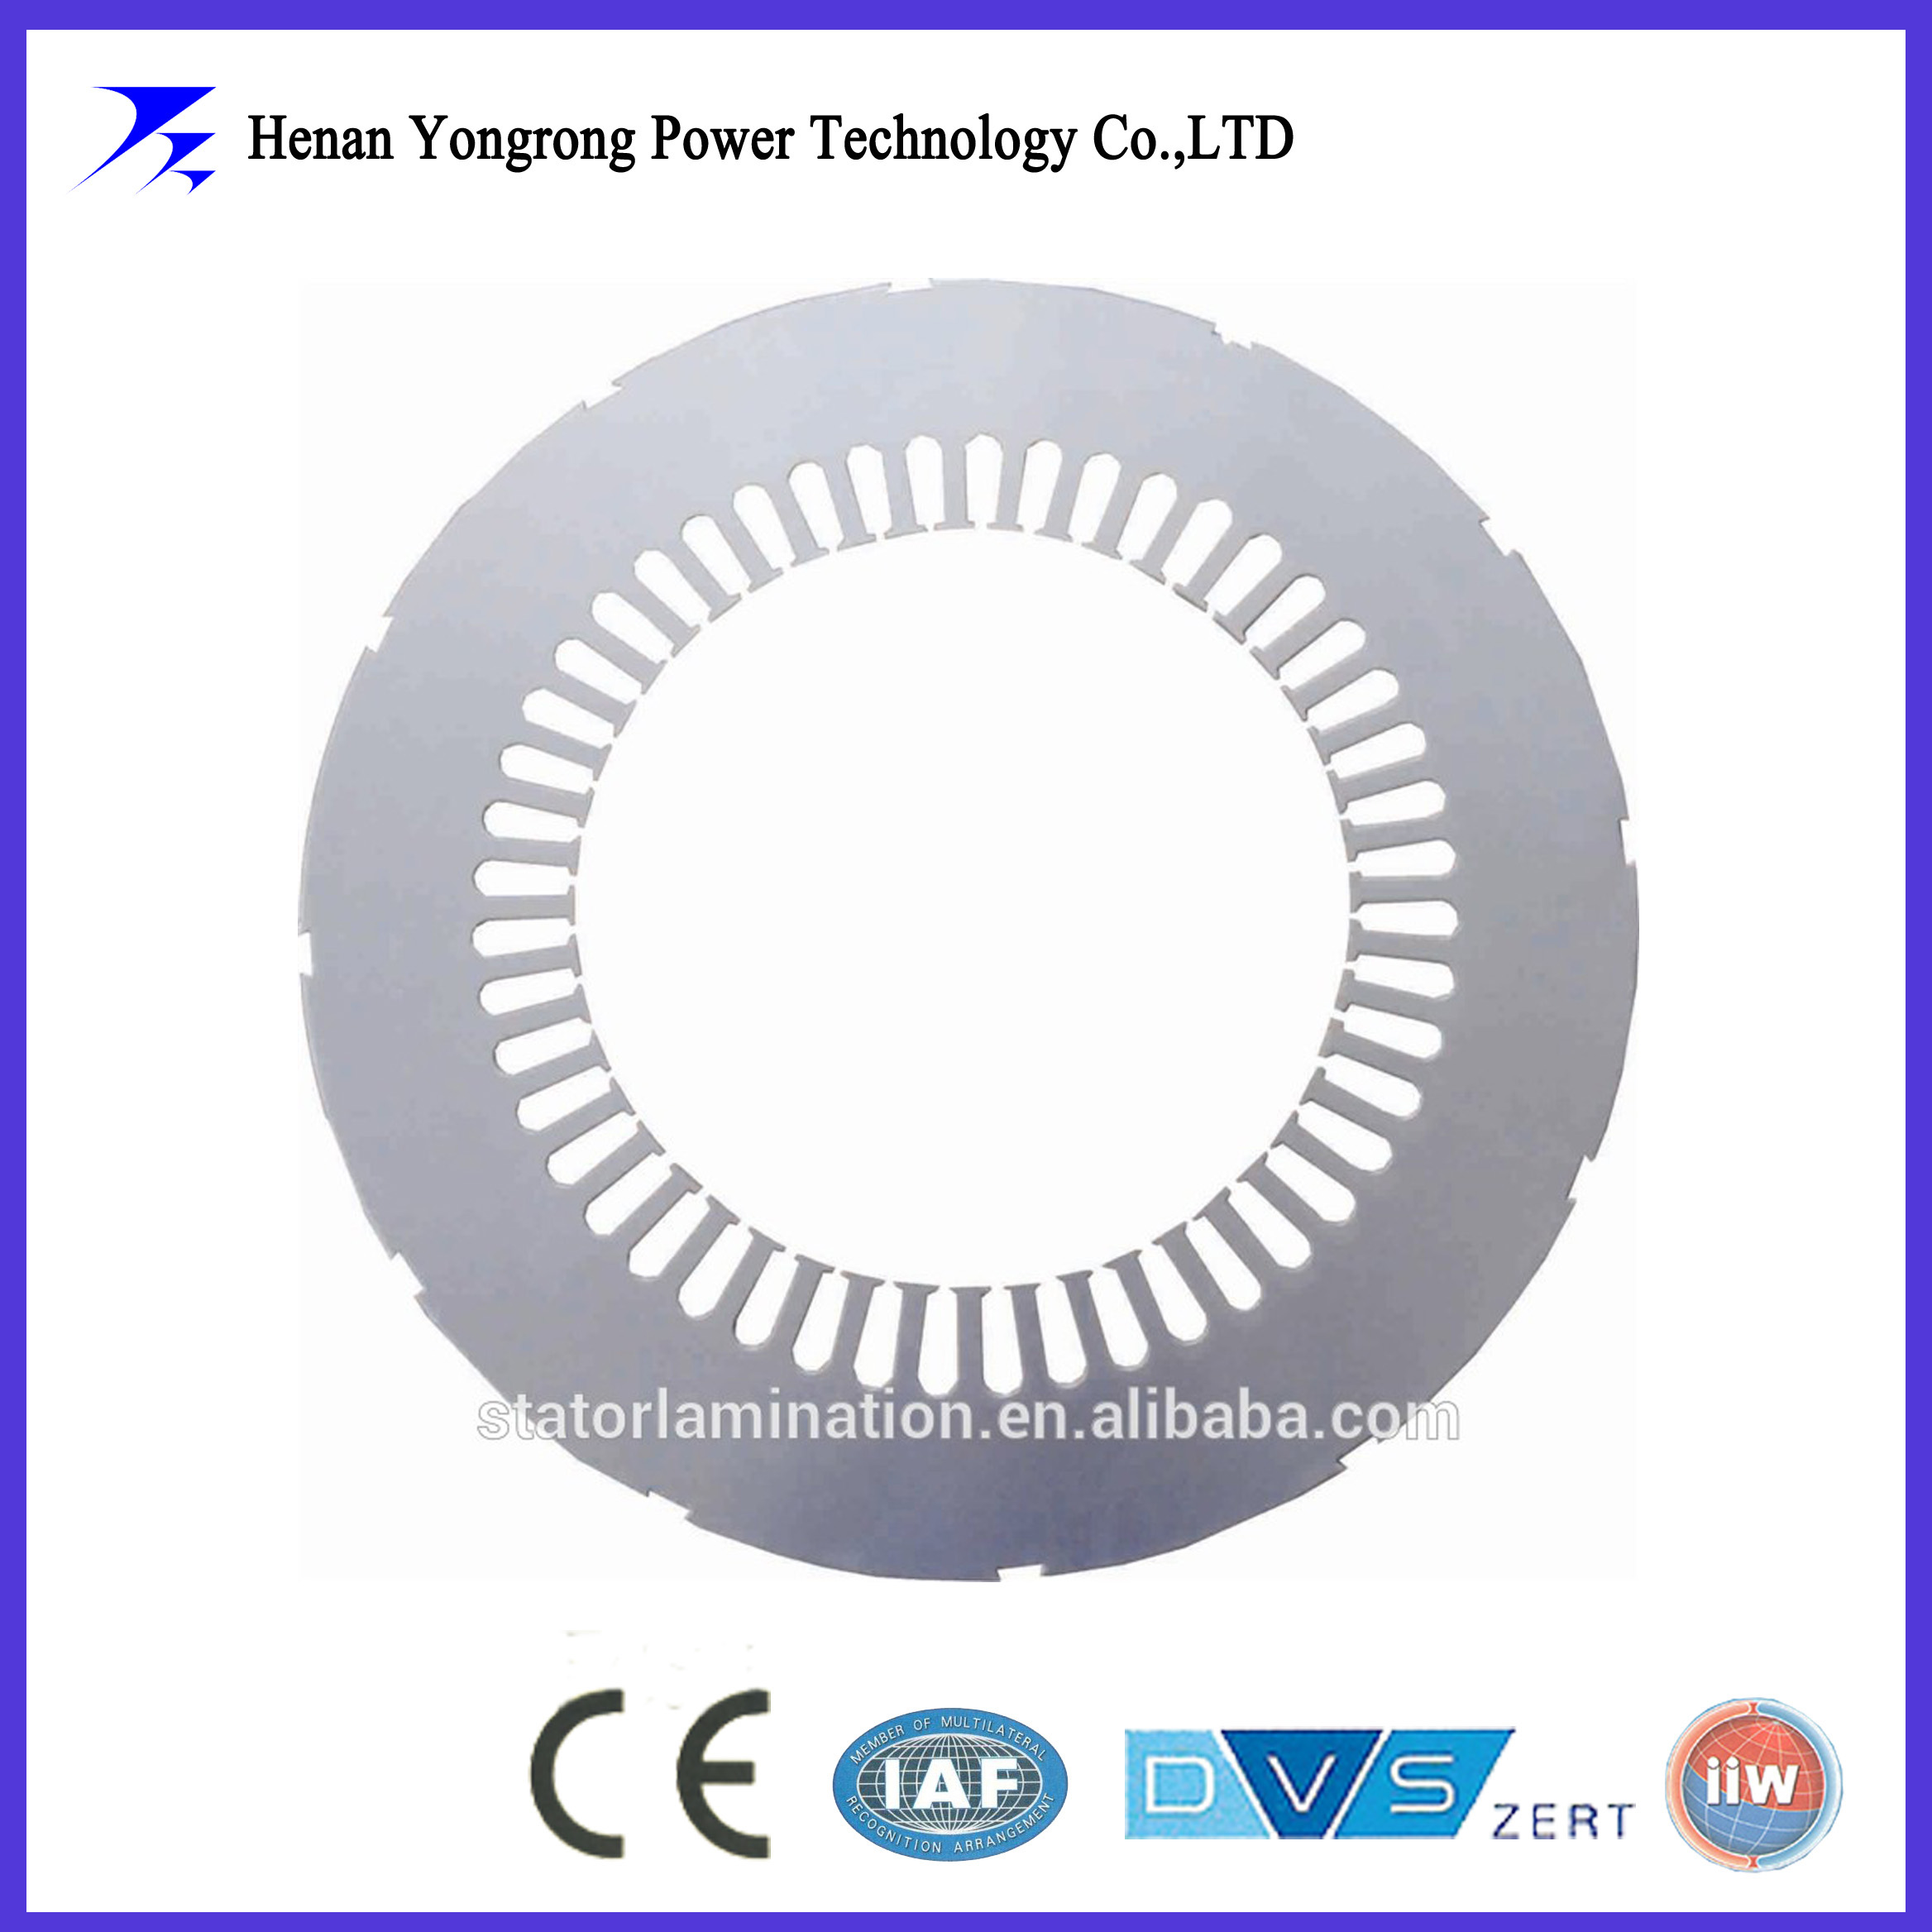 Induction motor silicon steel cores and laminations